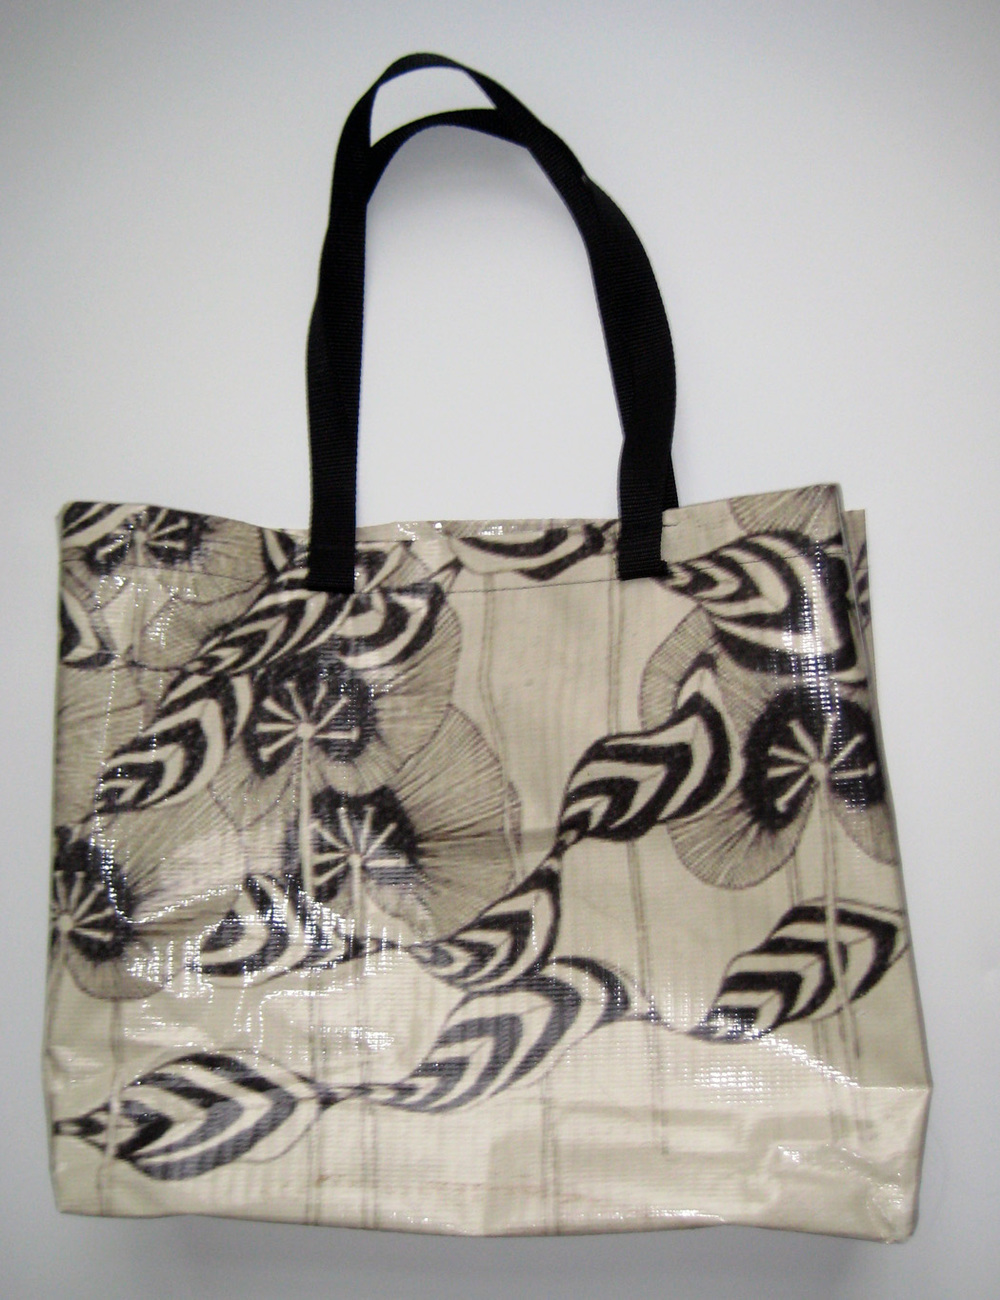 Bag made from canvas displayed (see pic below)for ArtBridge at Chelsea Terraces